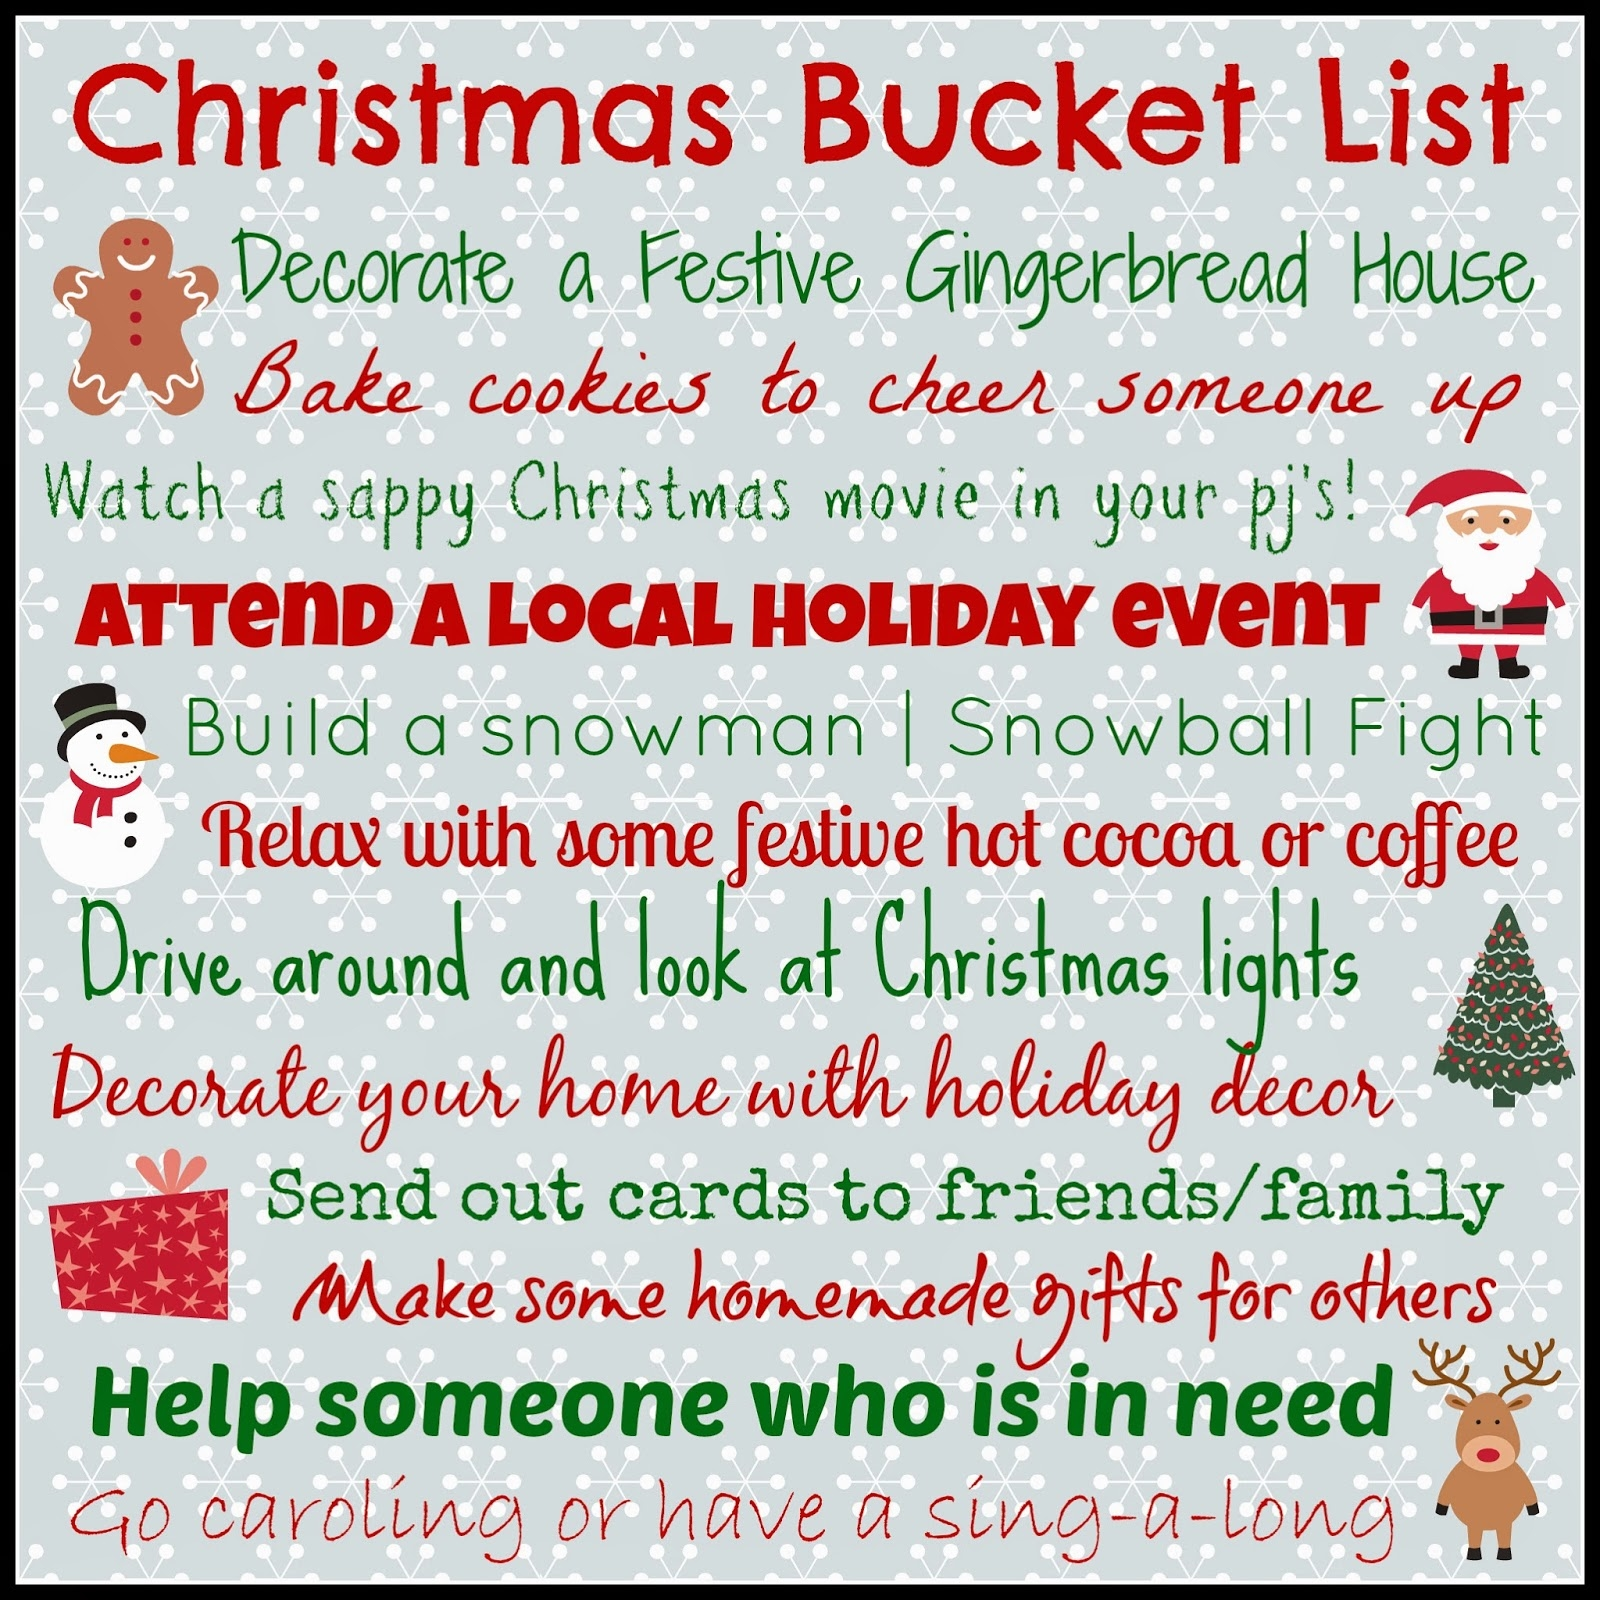 Christmas Bucket List Pictures Photos And Images For